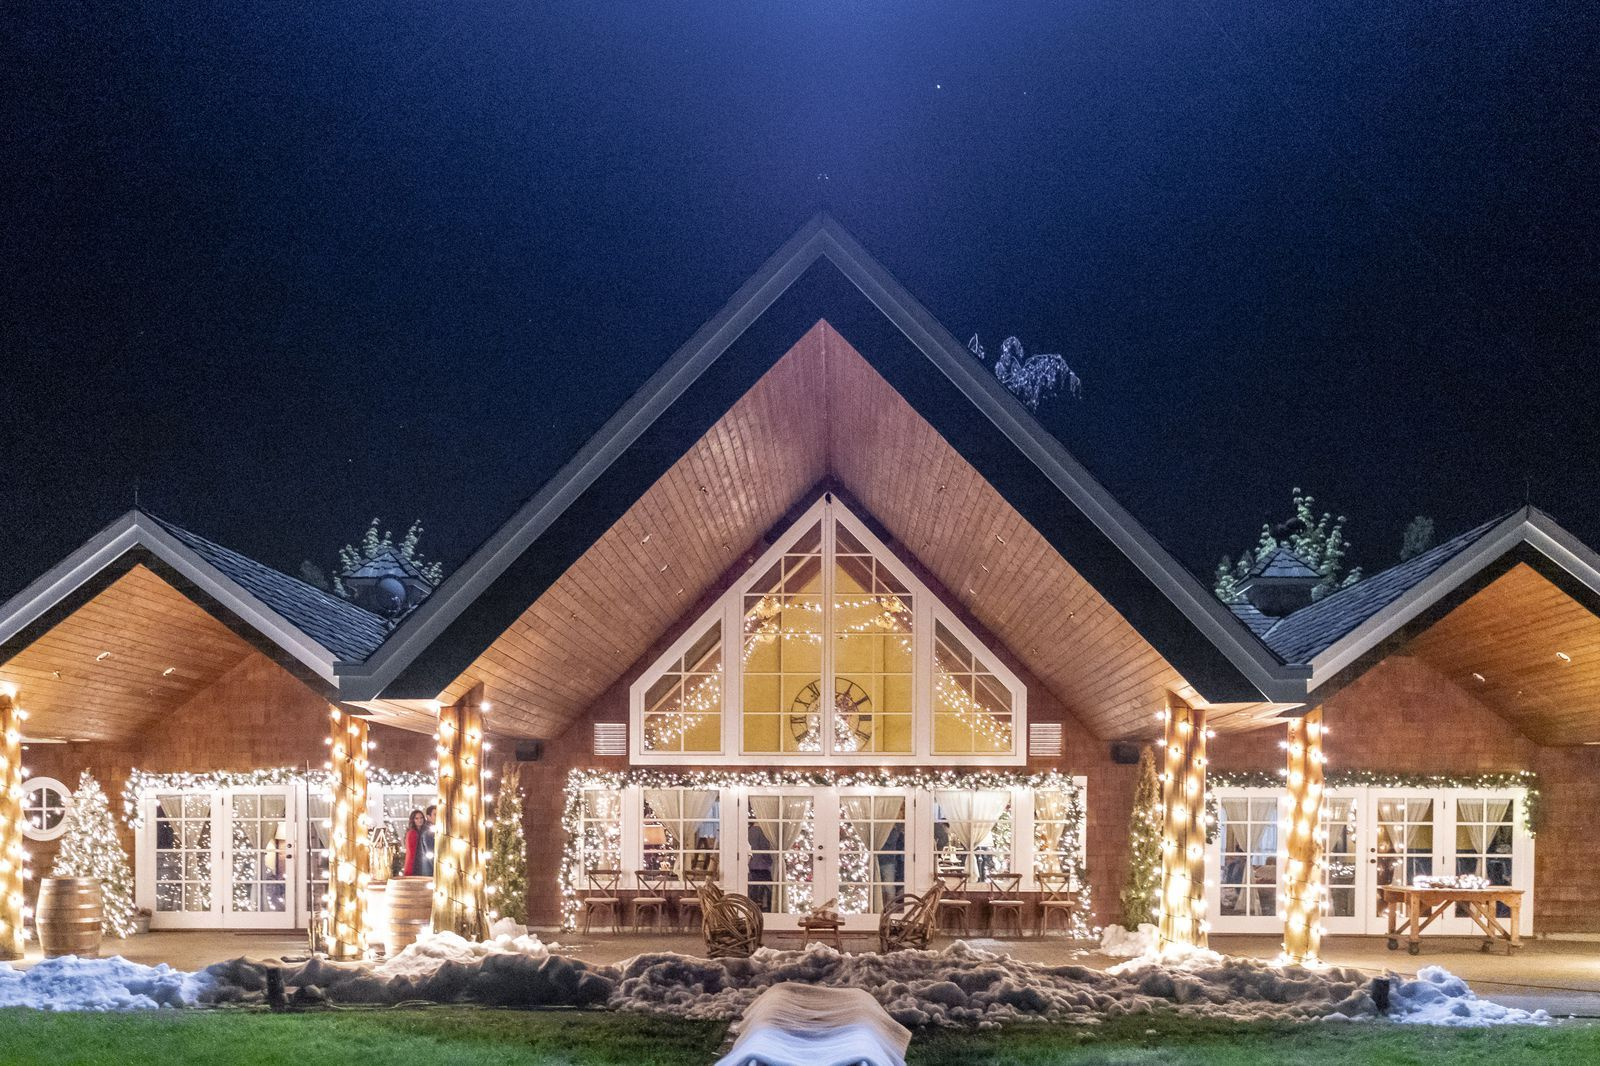 Plan Your Visit to This Charming Town Where Hallmark's New Christmas Movies Were Filmed ...